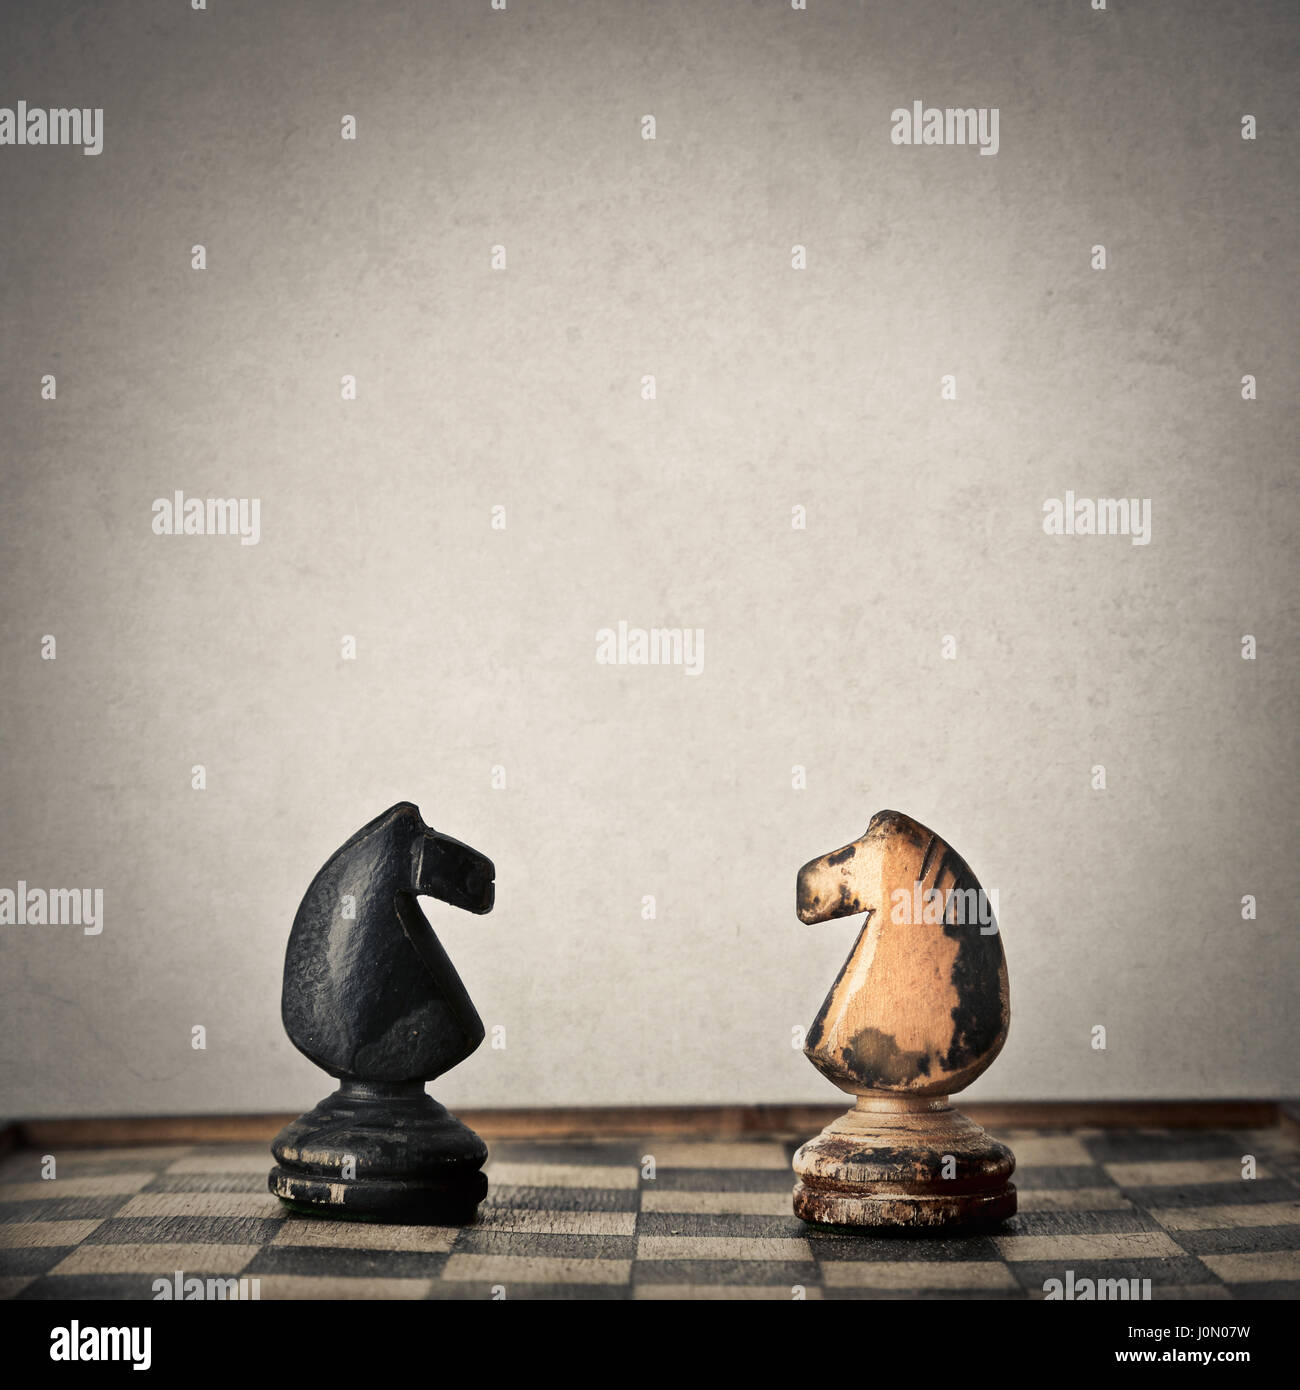 Two chess horses facing each other - Stock Image